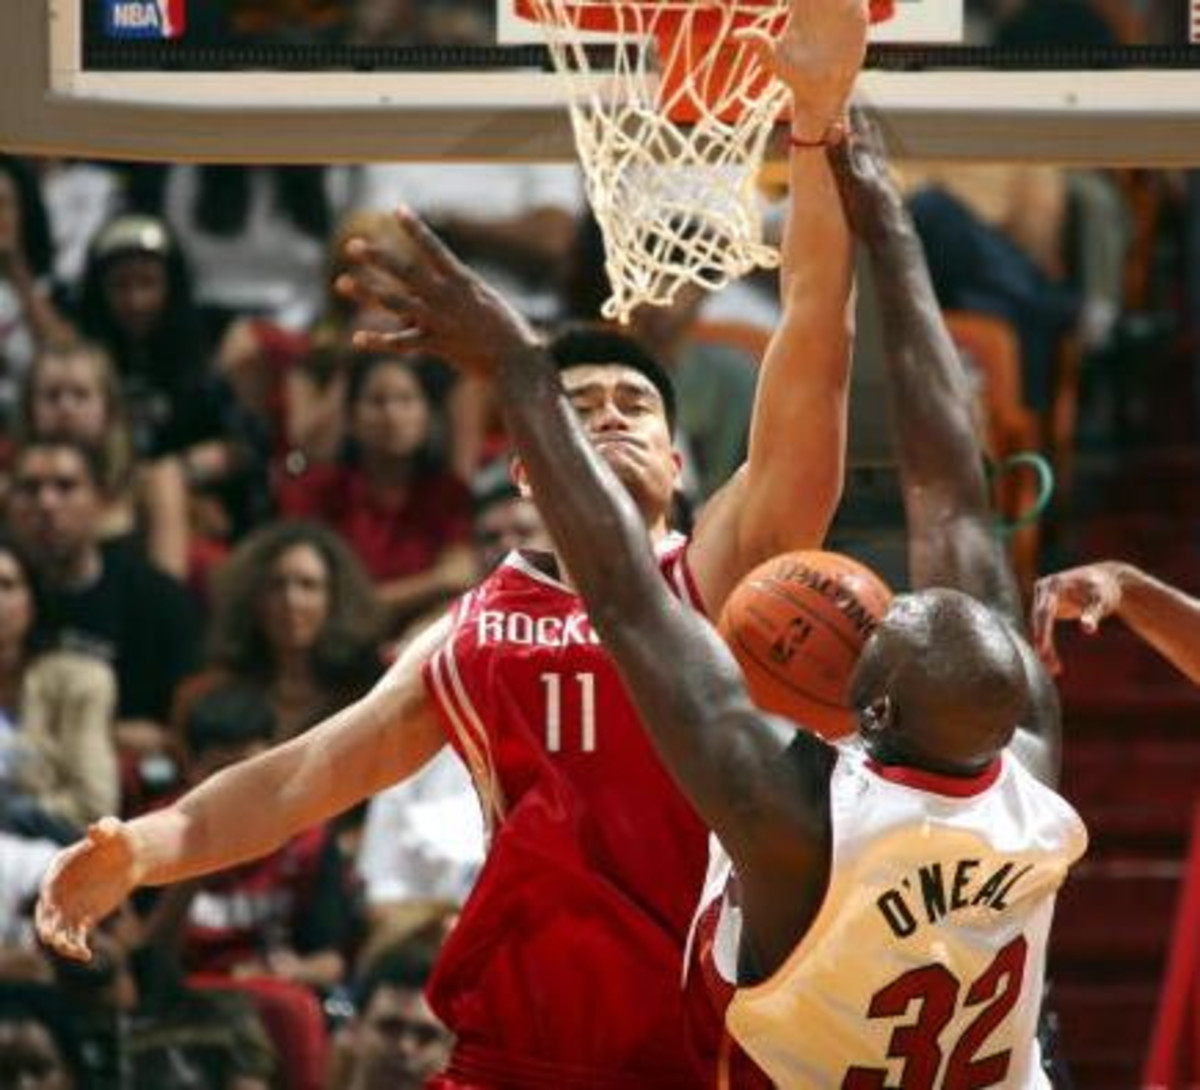 Yao Ming humiliates Shaquille O' Neil by blocking his shot..